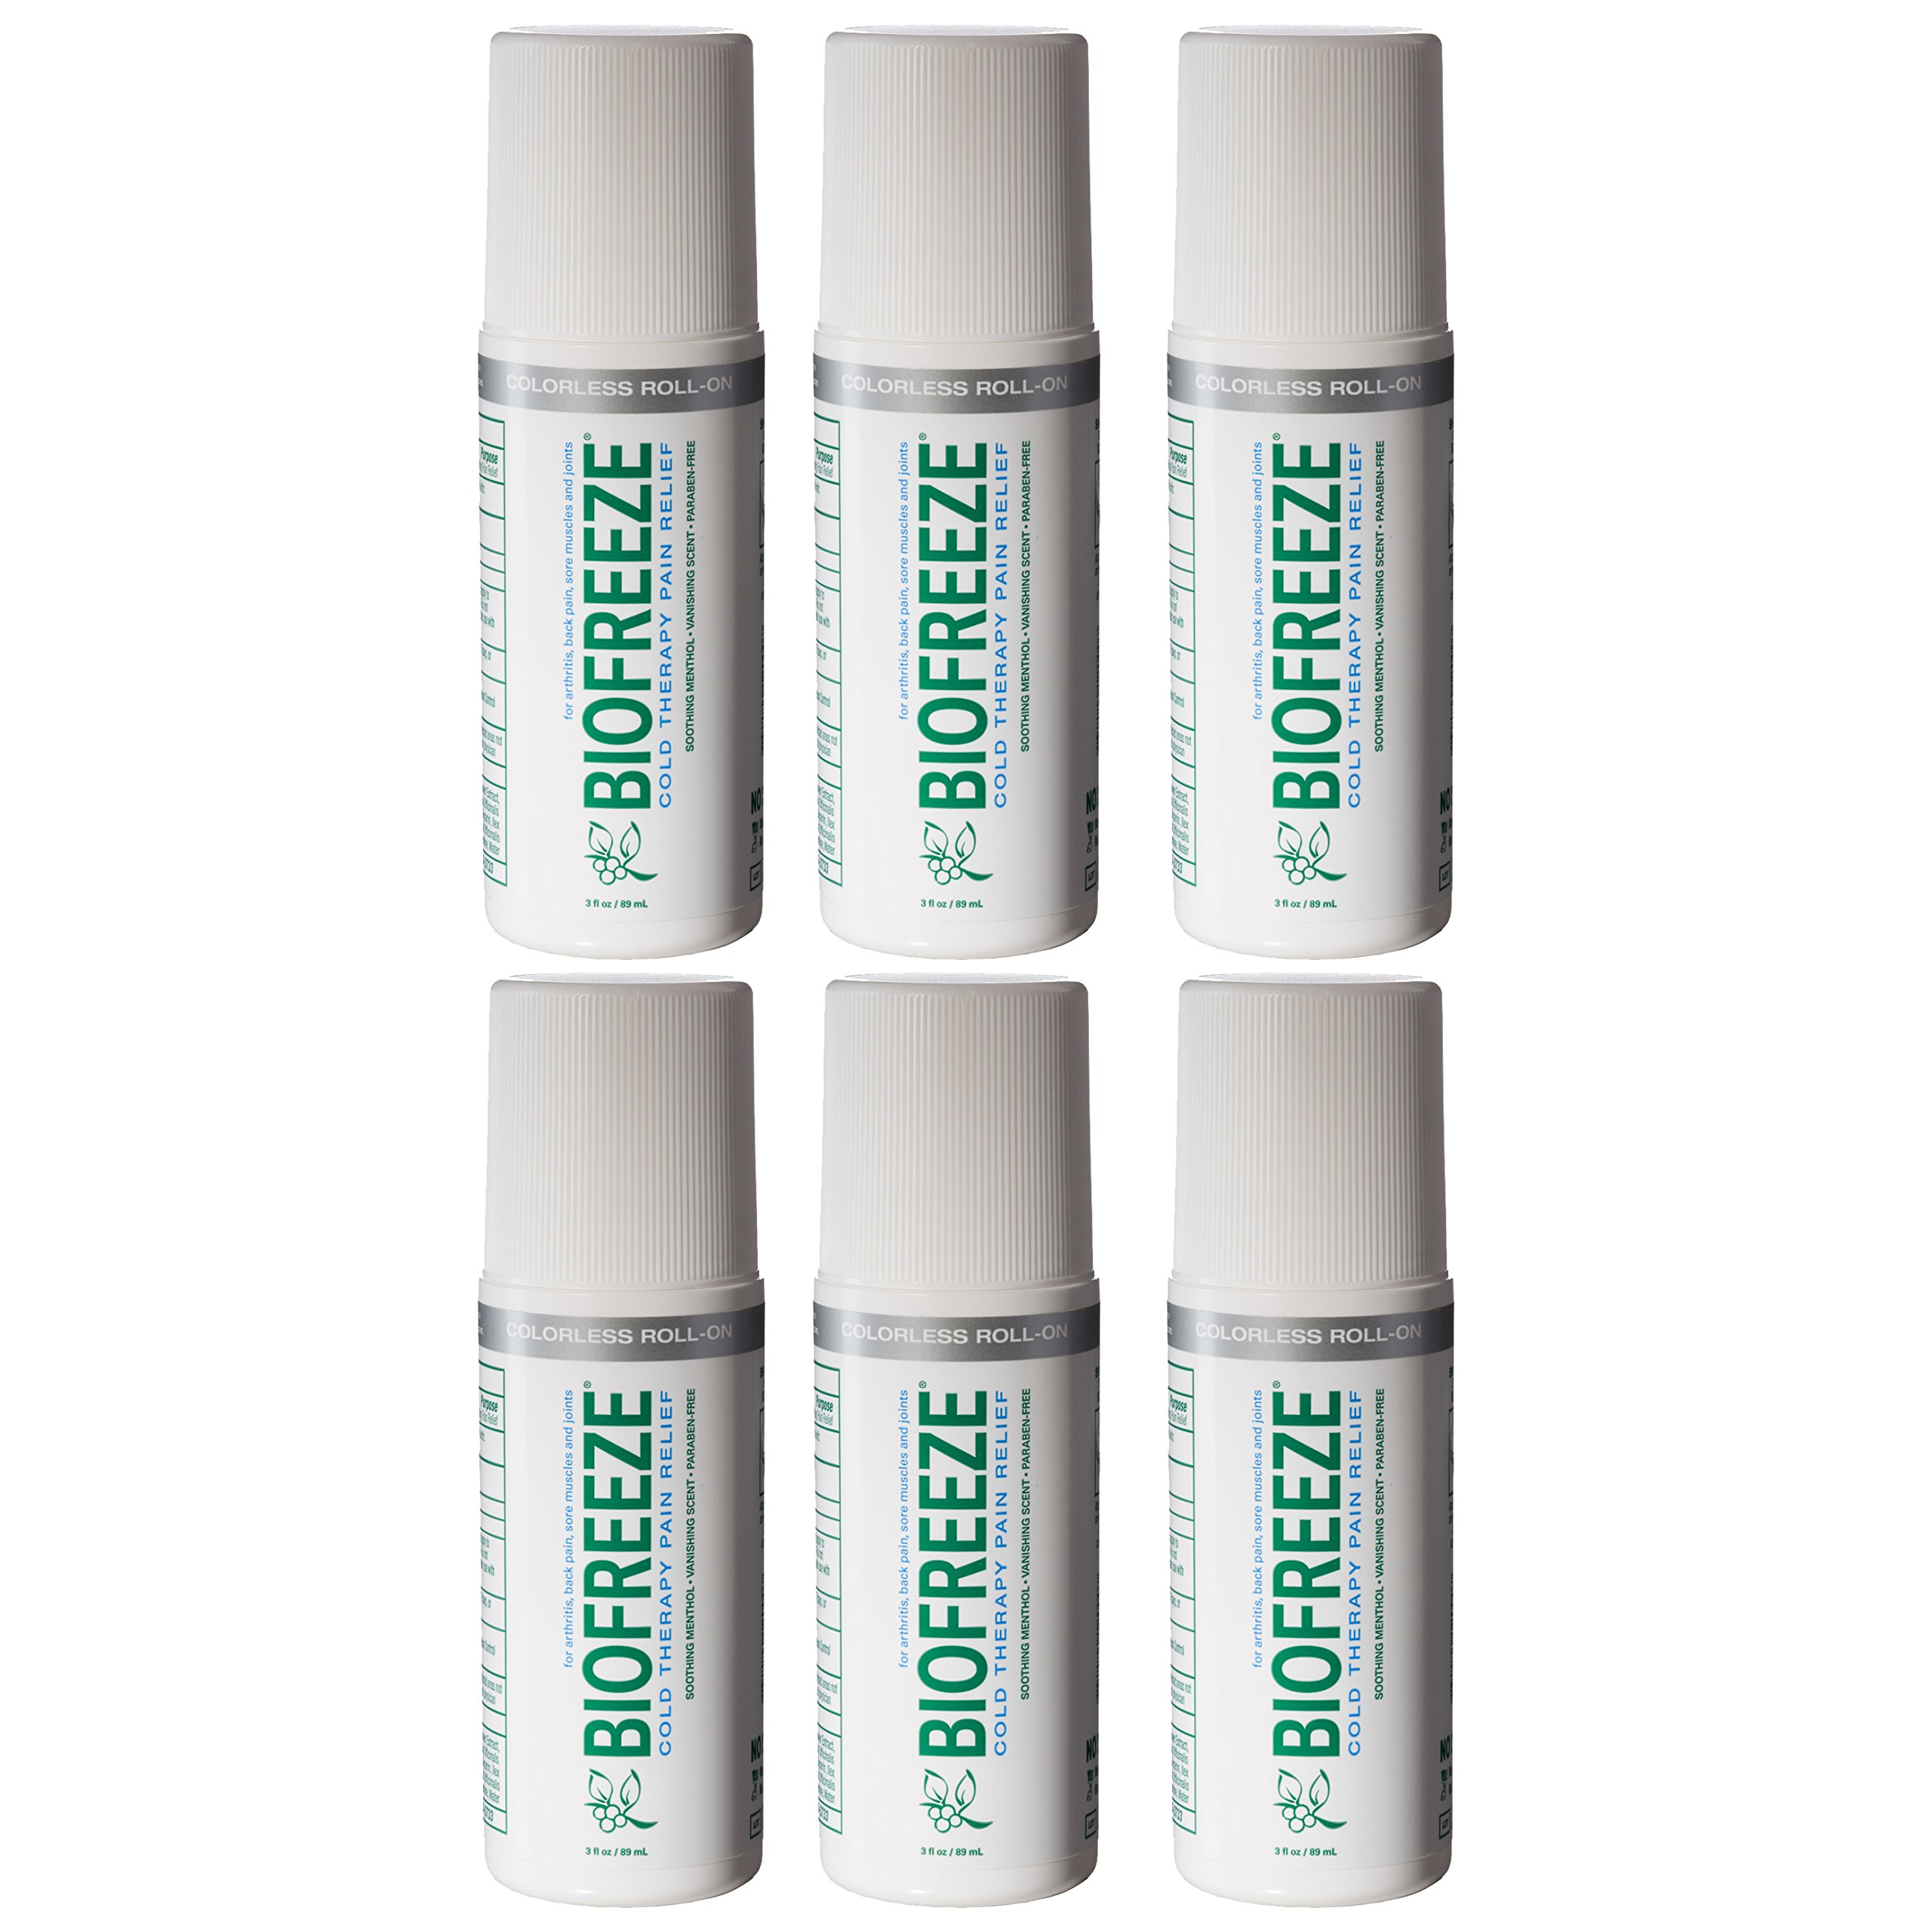 Biofreeze Pain Relief Gel, 3 oz. Colorless Roll-On, Fast Acting, Long Lasting, & Powerful Topical Pain Reliever, Pack of 6